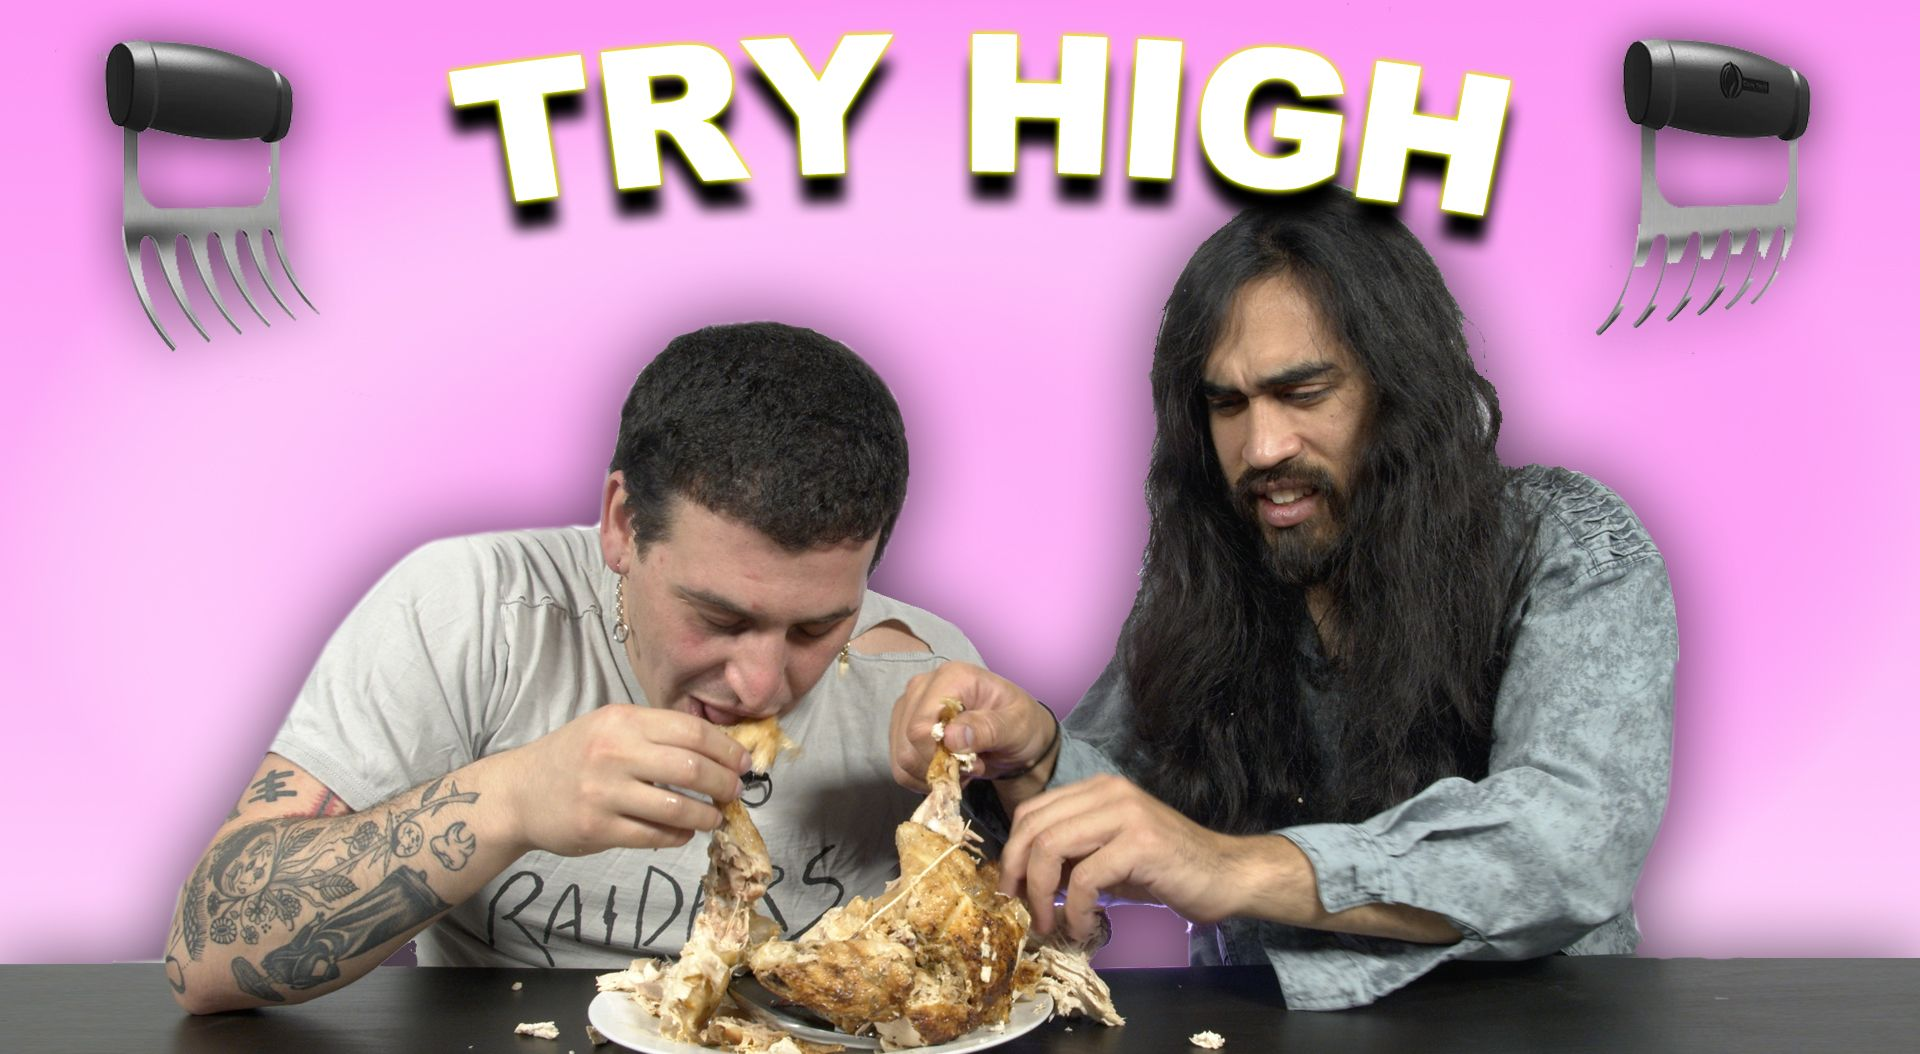 Dalton & Makal Tear Into a Rotisserie Chicken Like Lit Bears | TRY HIGH